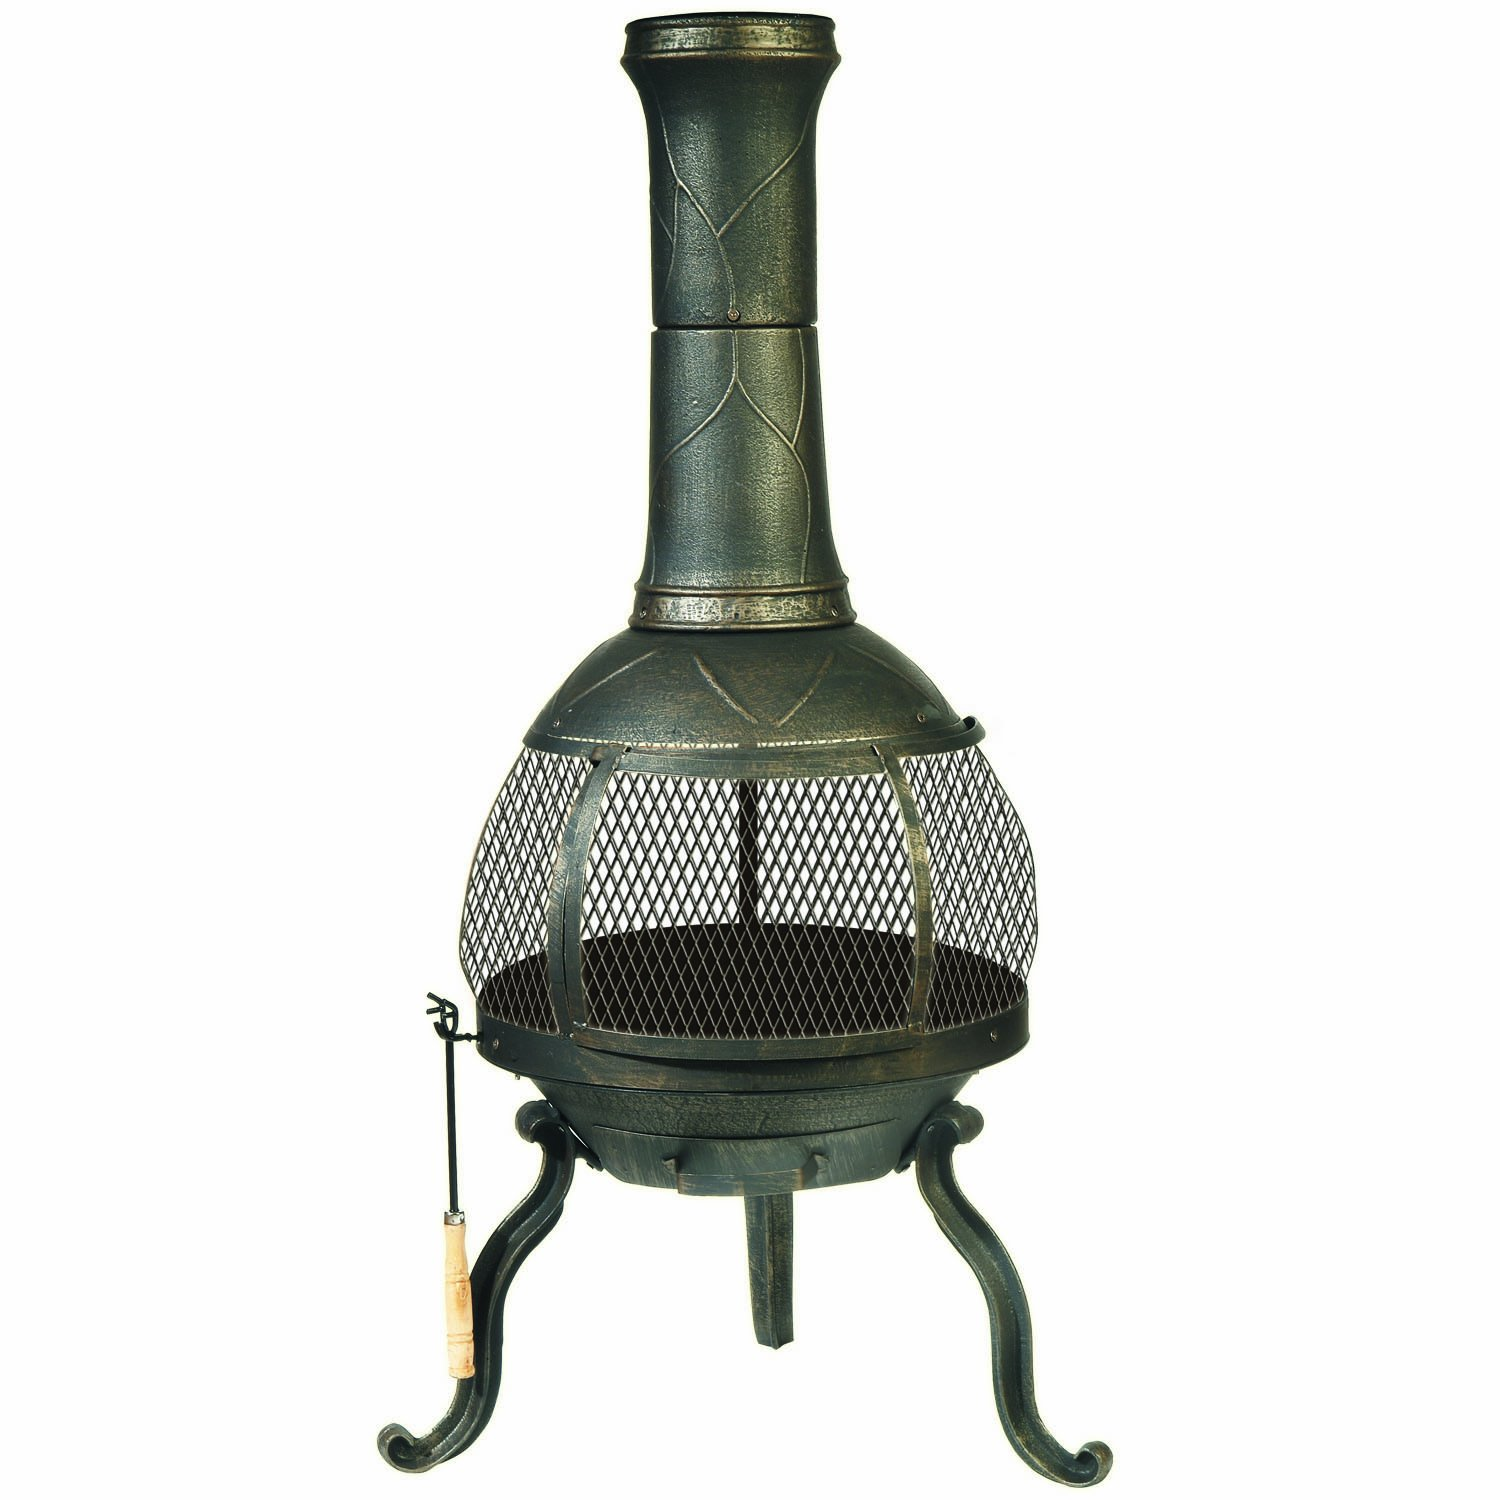 Amazon.com : Deckmate Sonora Outdoor Chimenea Fireplace Model 30199 : Kay Outdoor Fireplace : Garden & Outdoor